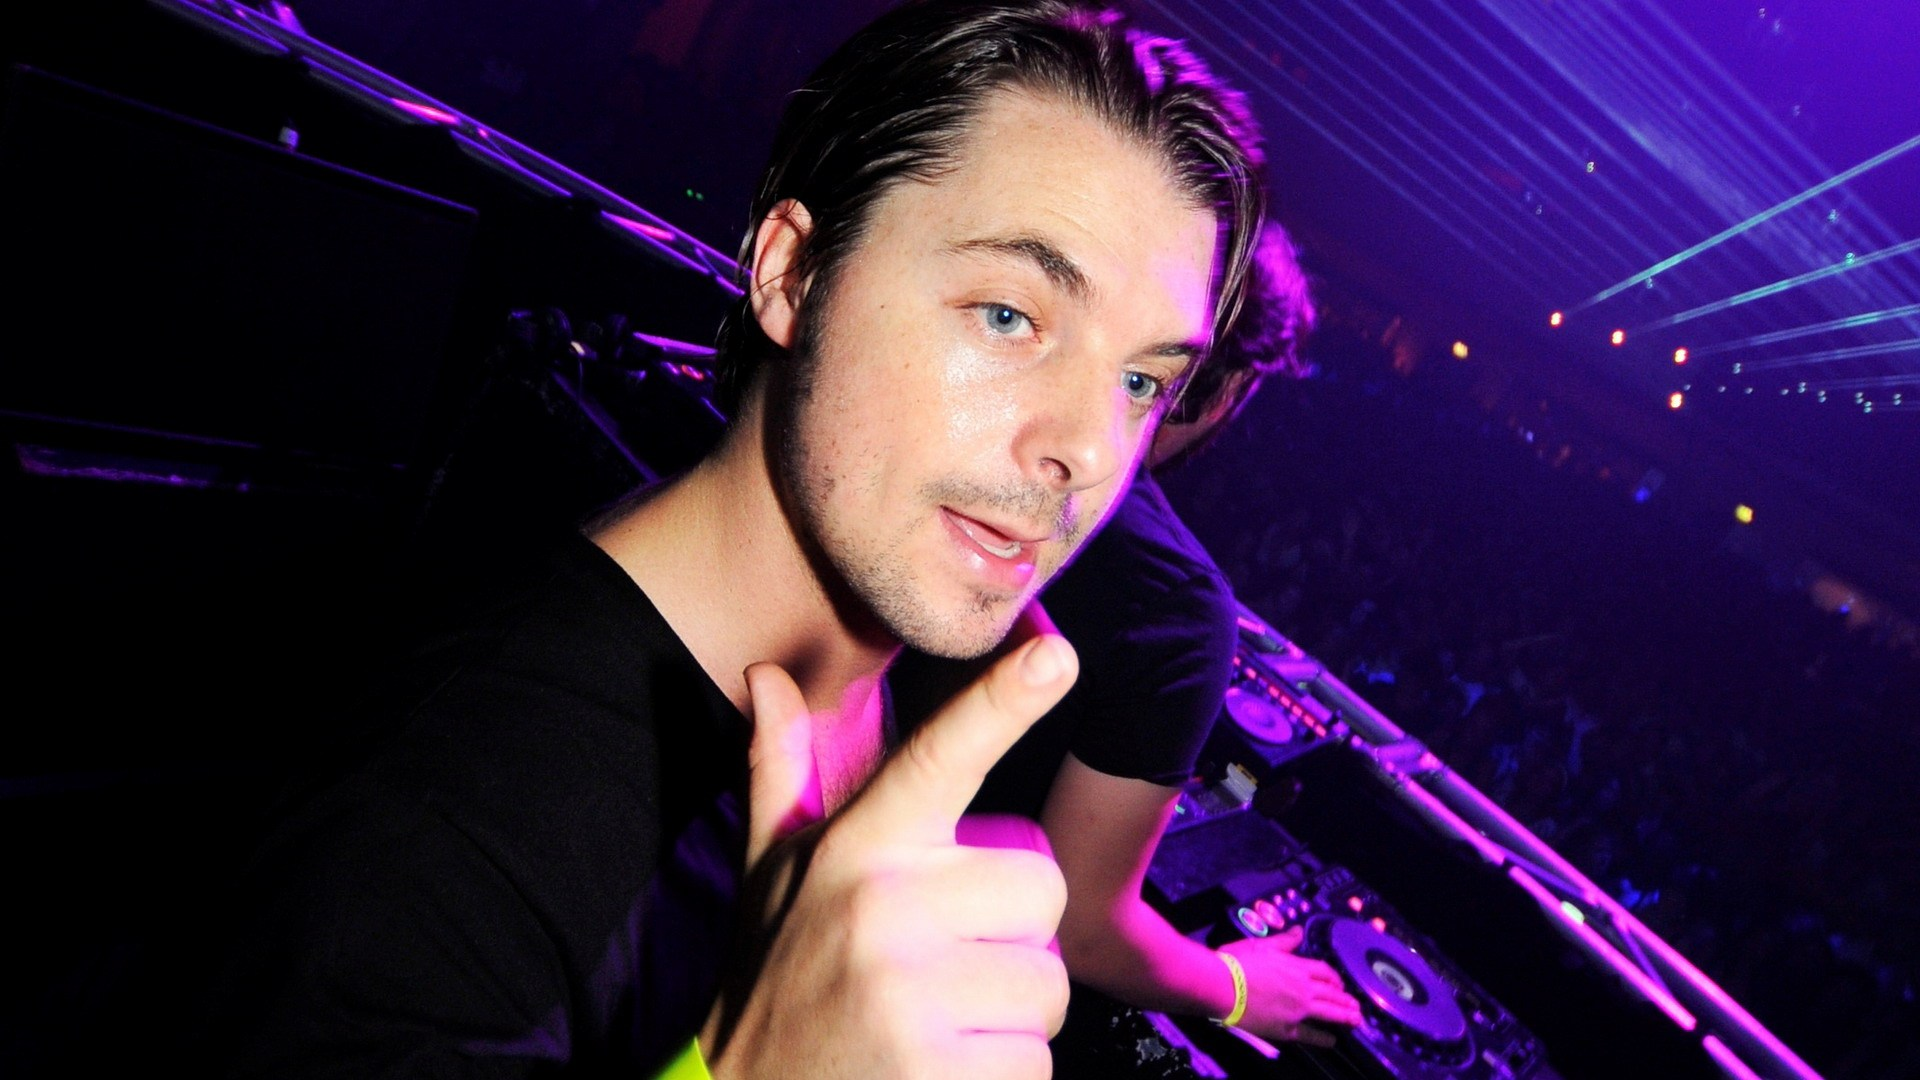 I Love You av Axwell